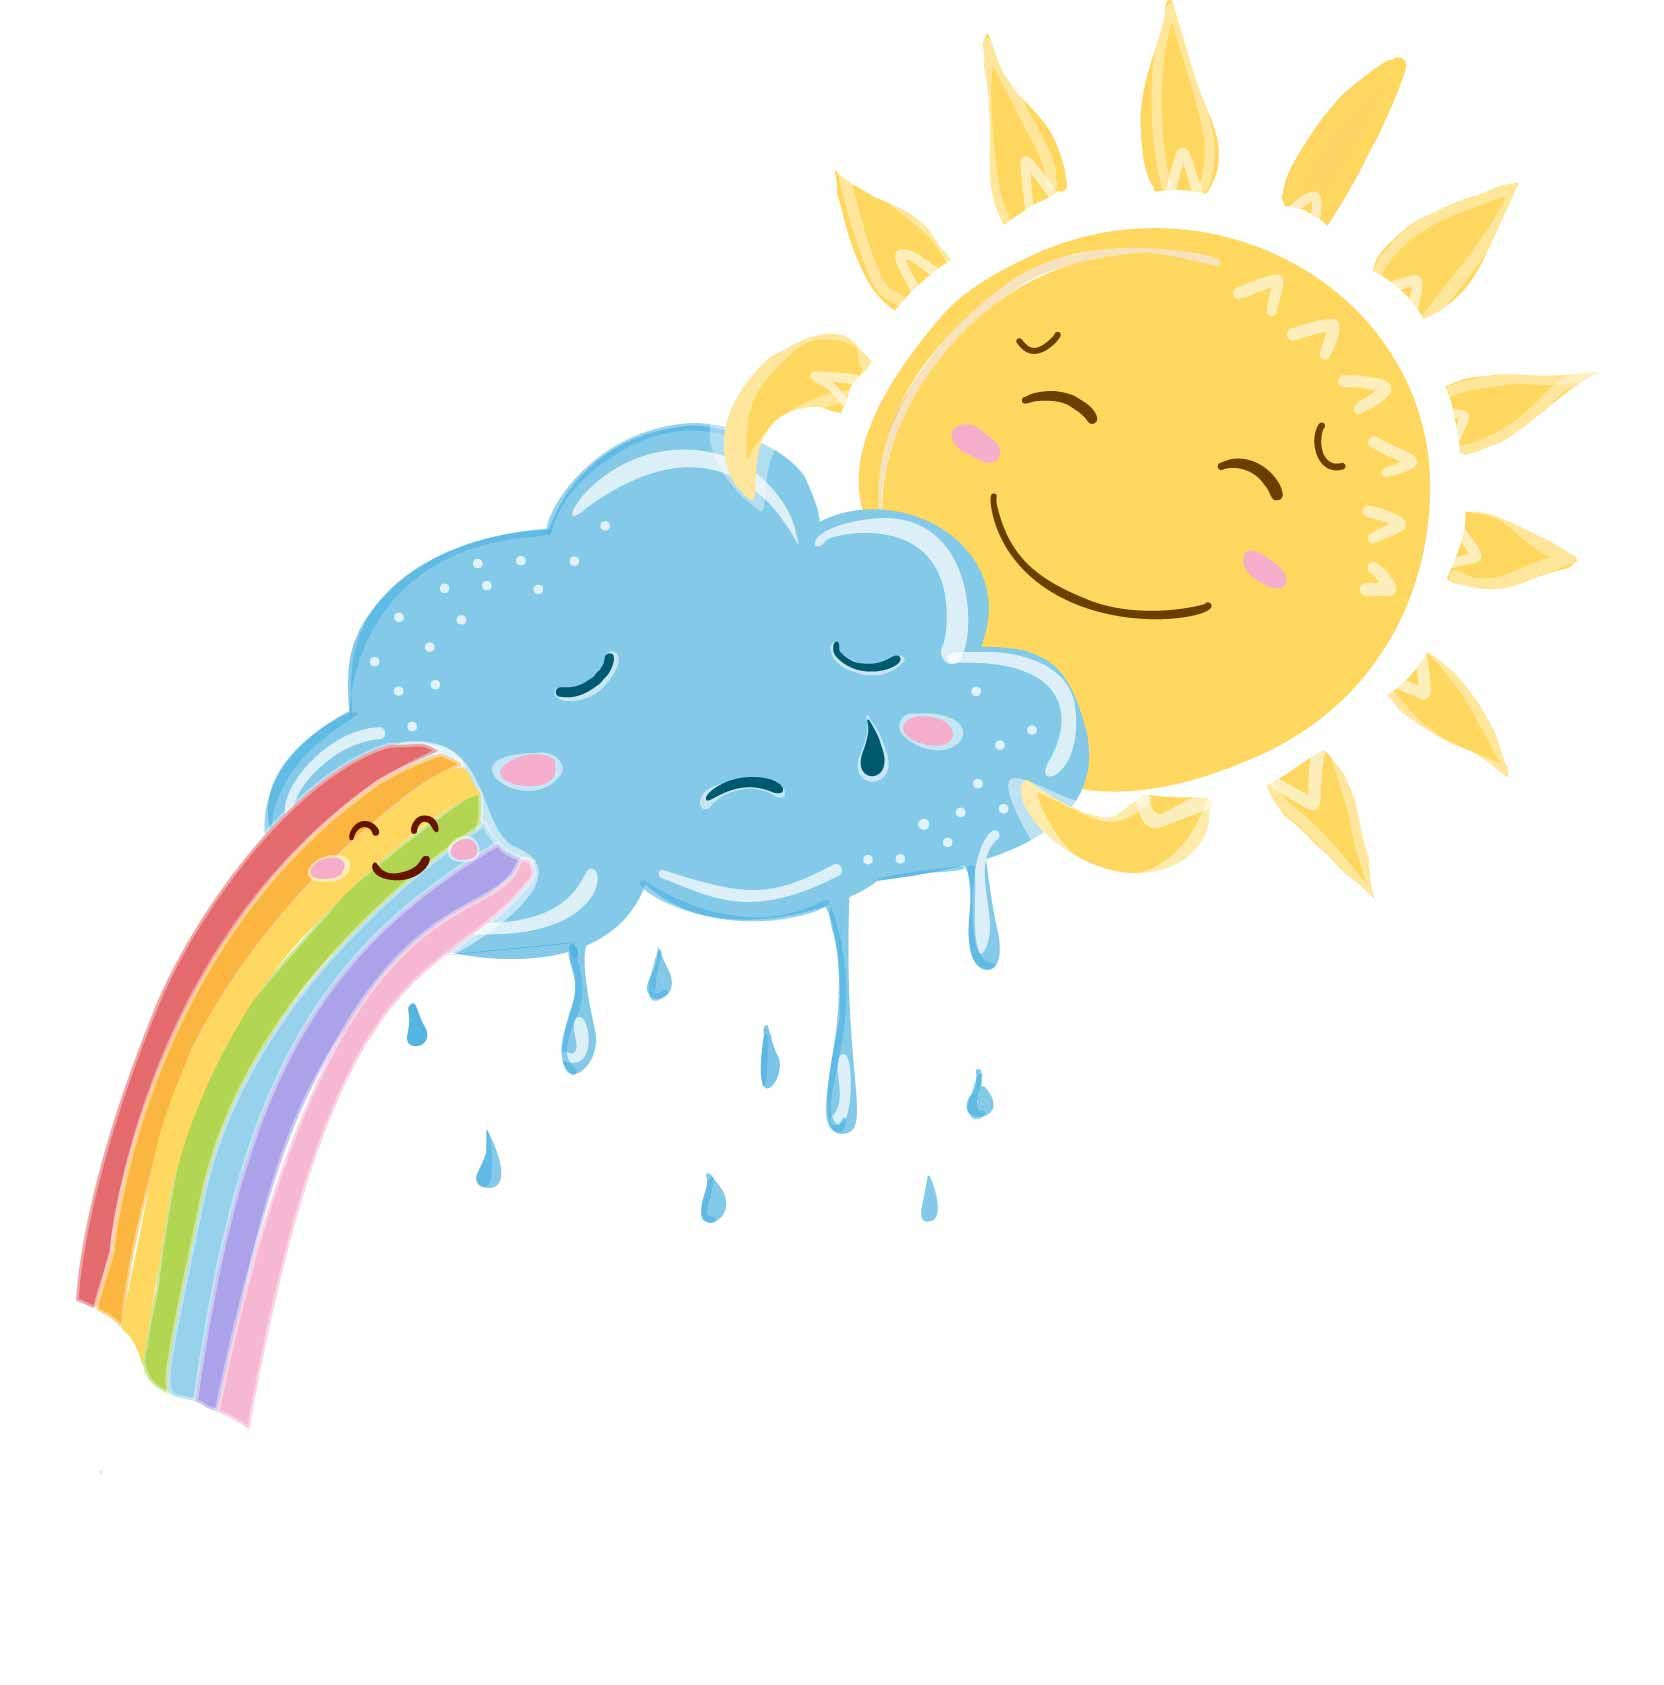 Sun i feel clipart image transparent stock Rainbow and sun cheer up sad cloud illustration. Cute ... image transparent stock